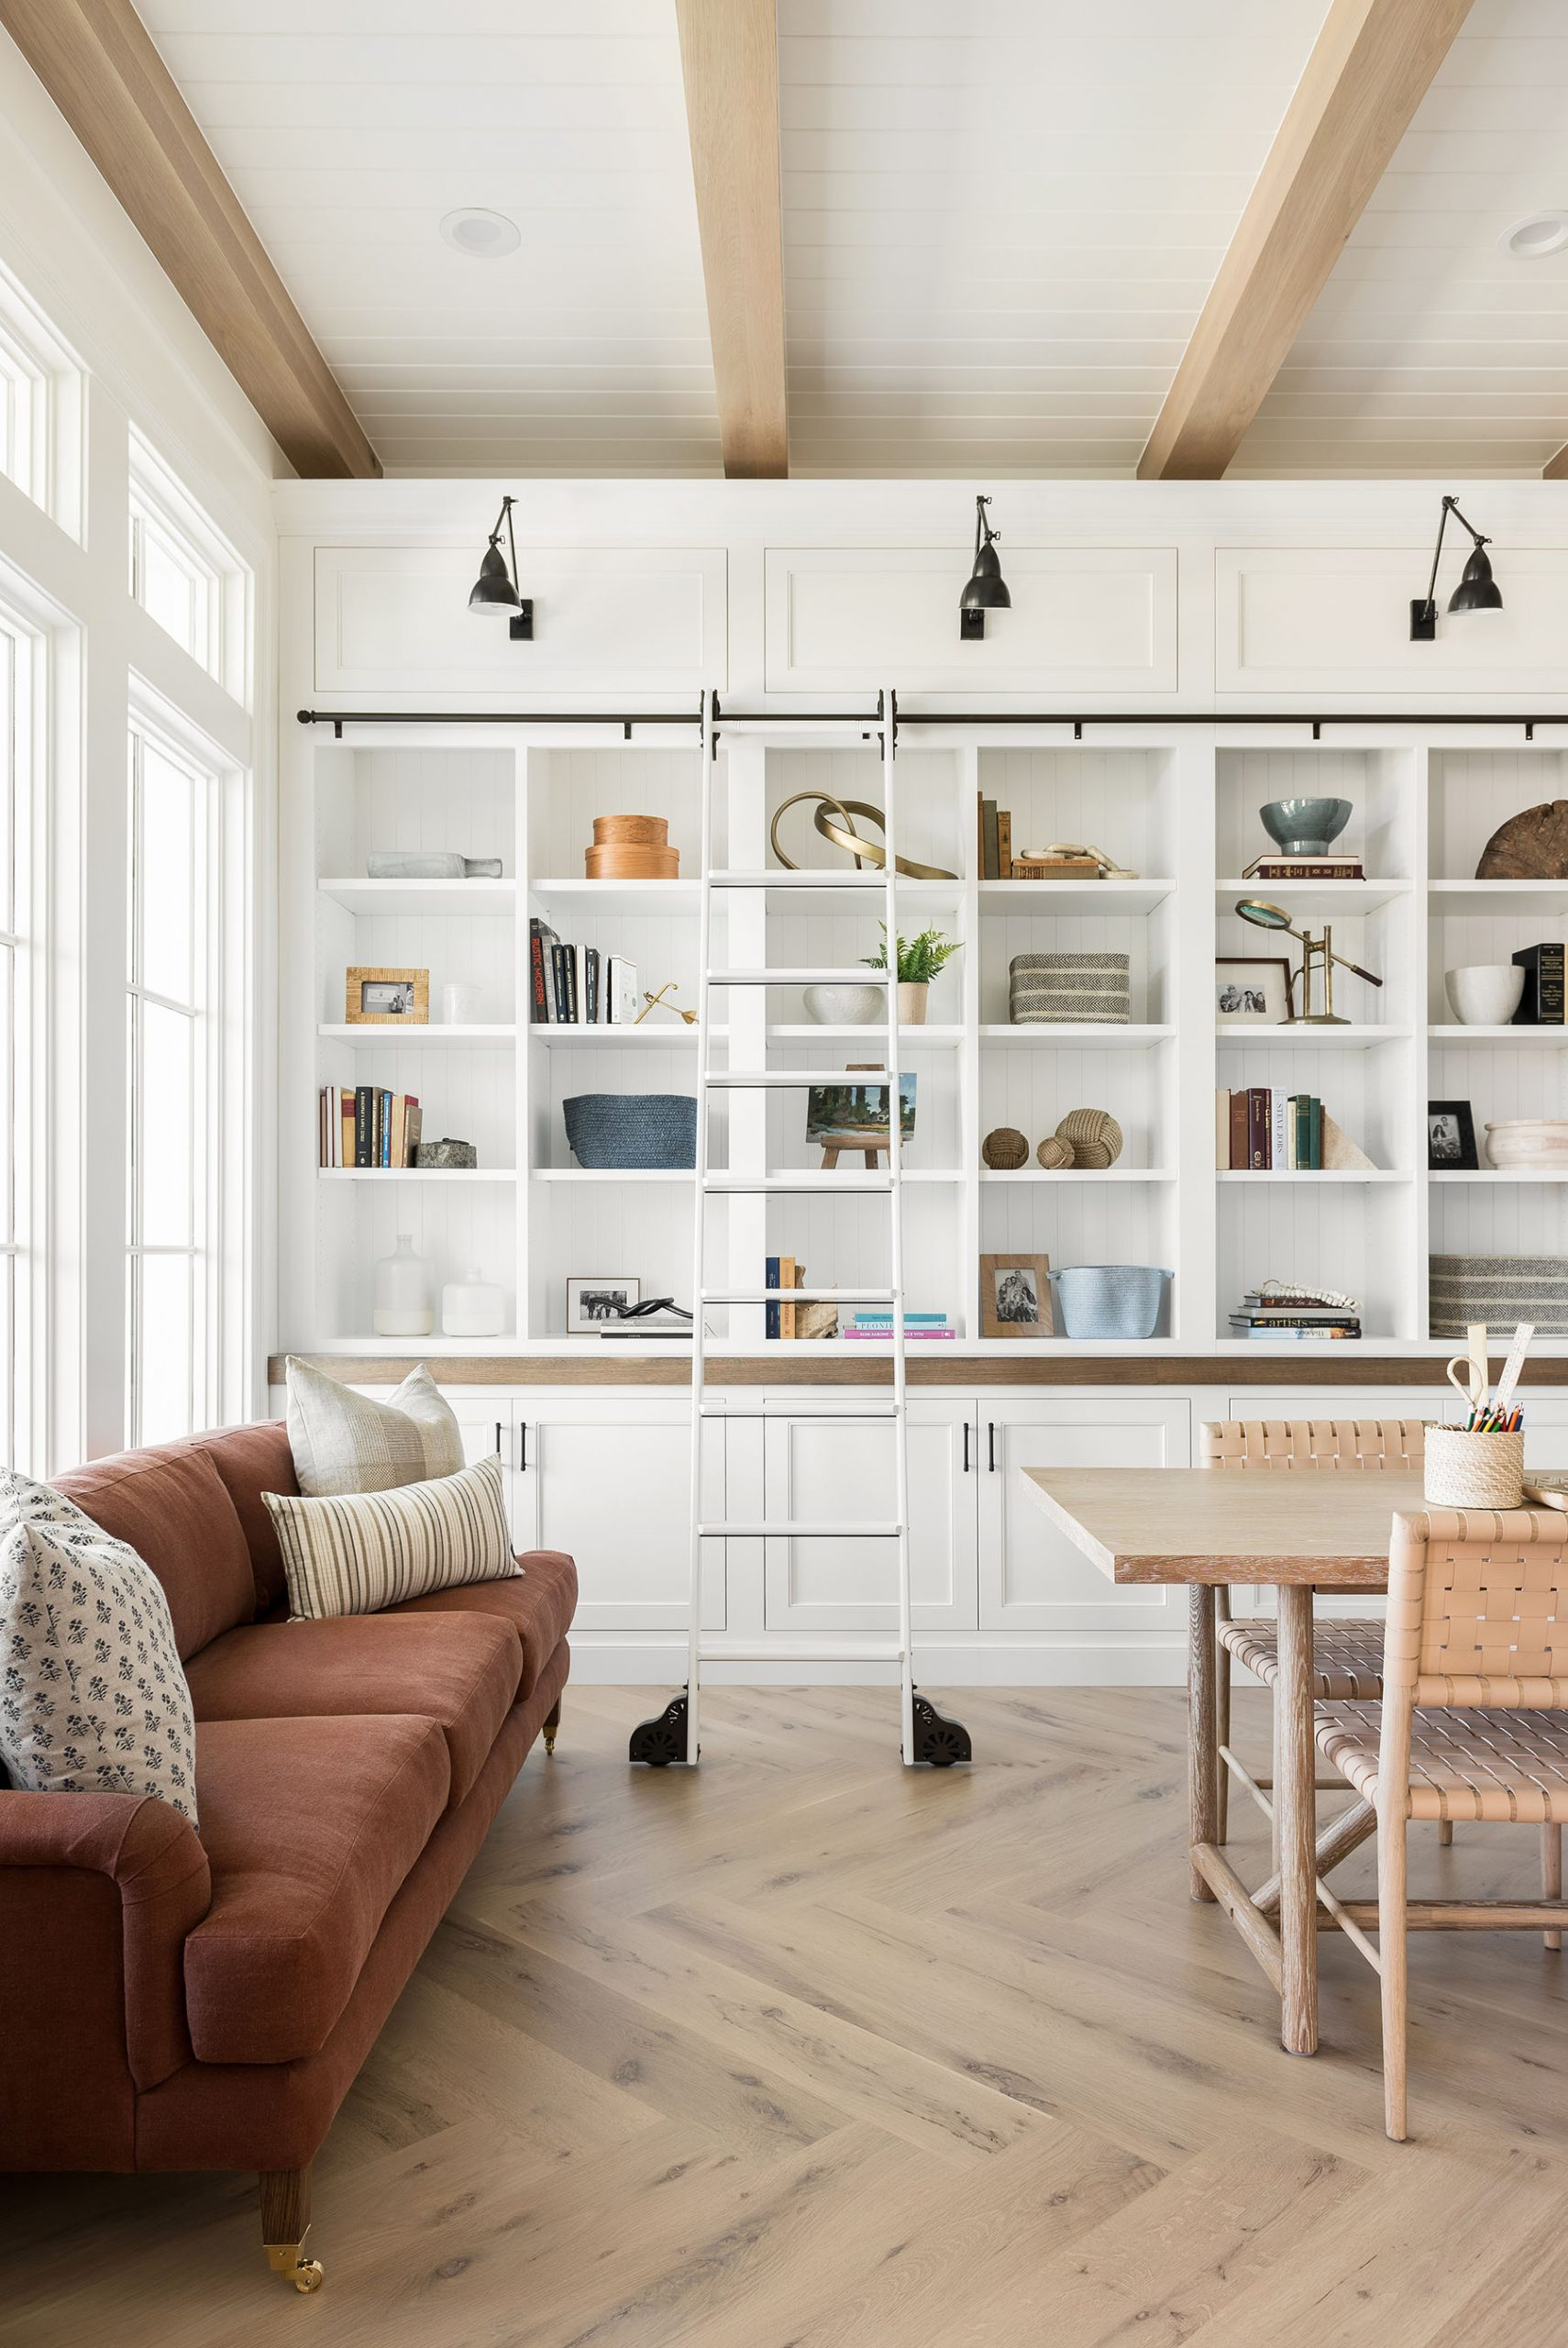 Home on The Ranch: Entry Library & Mudroom